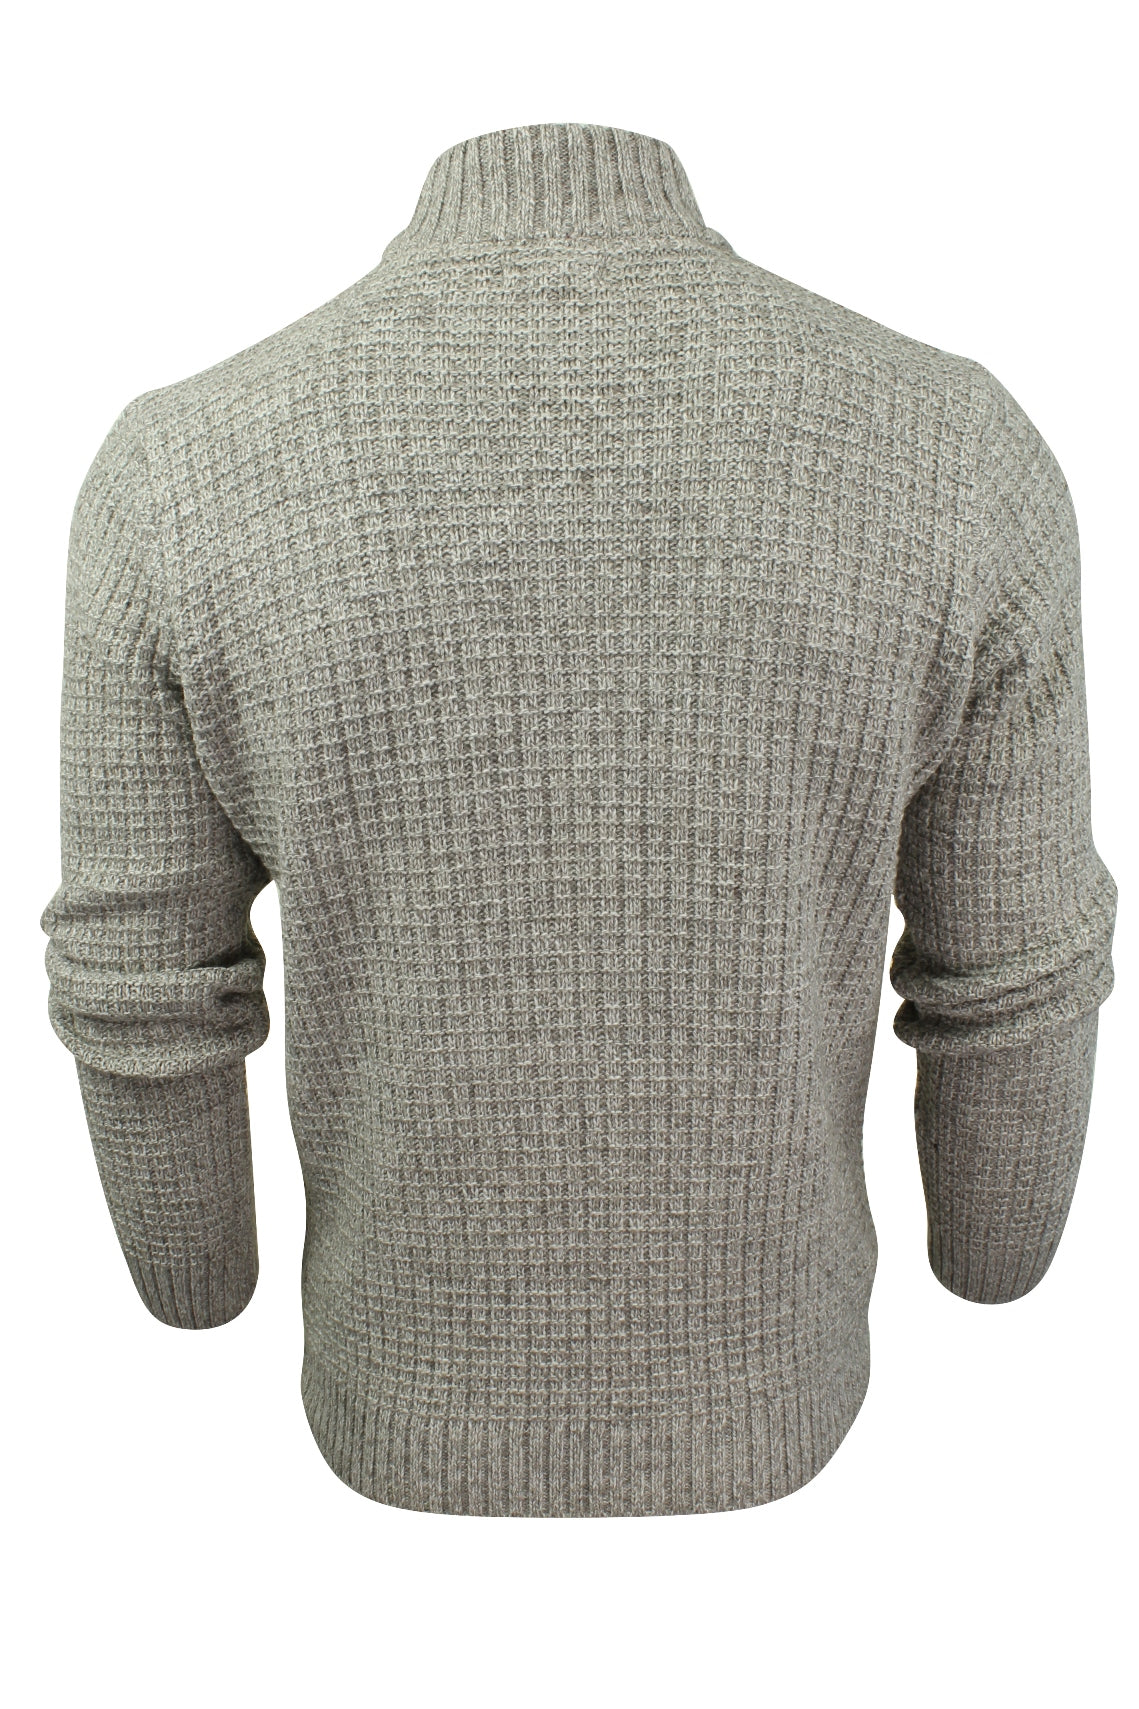 Mens Wool Blend Jumper Turtle Neck  by Xact-3